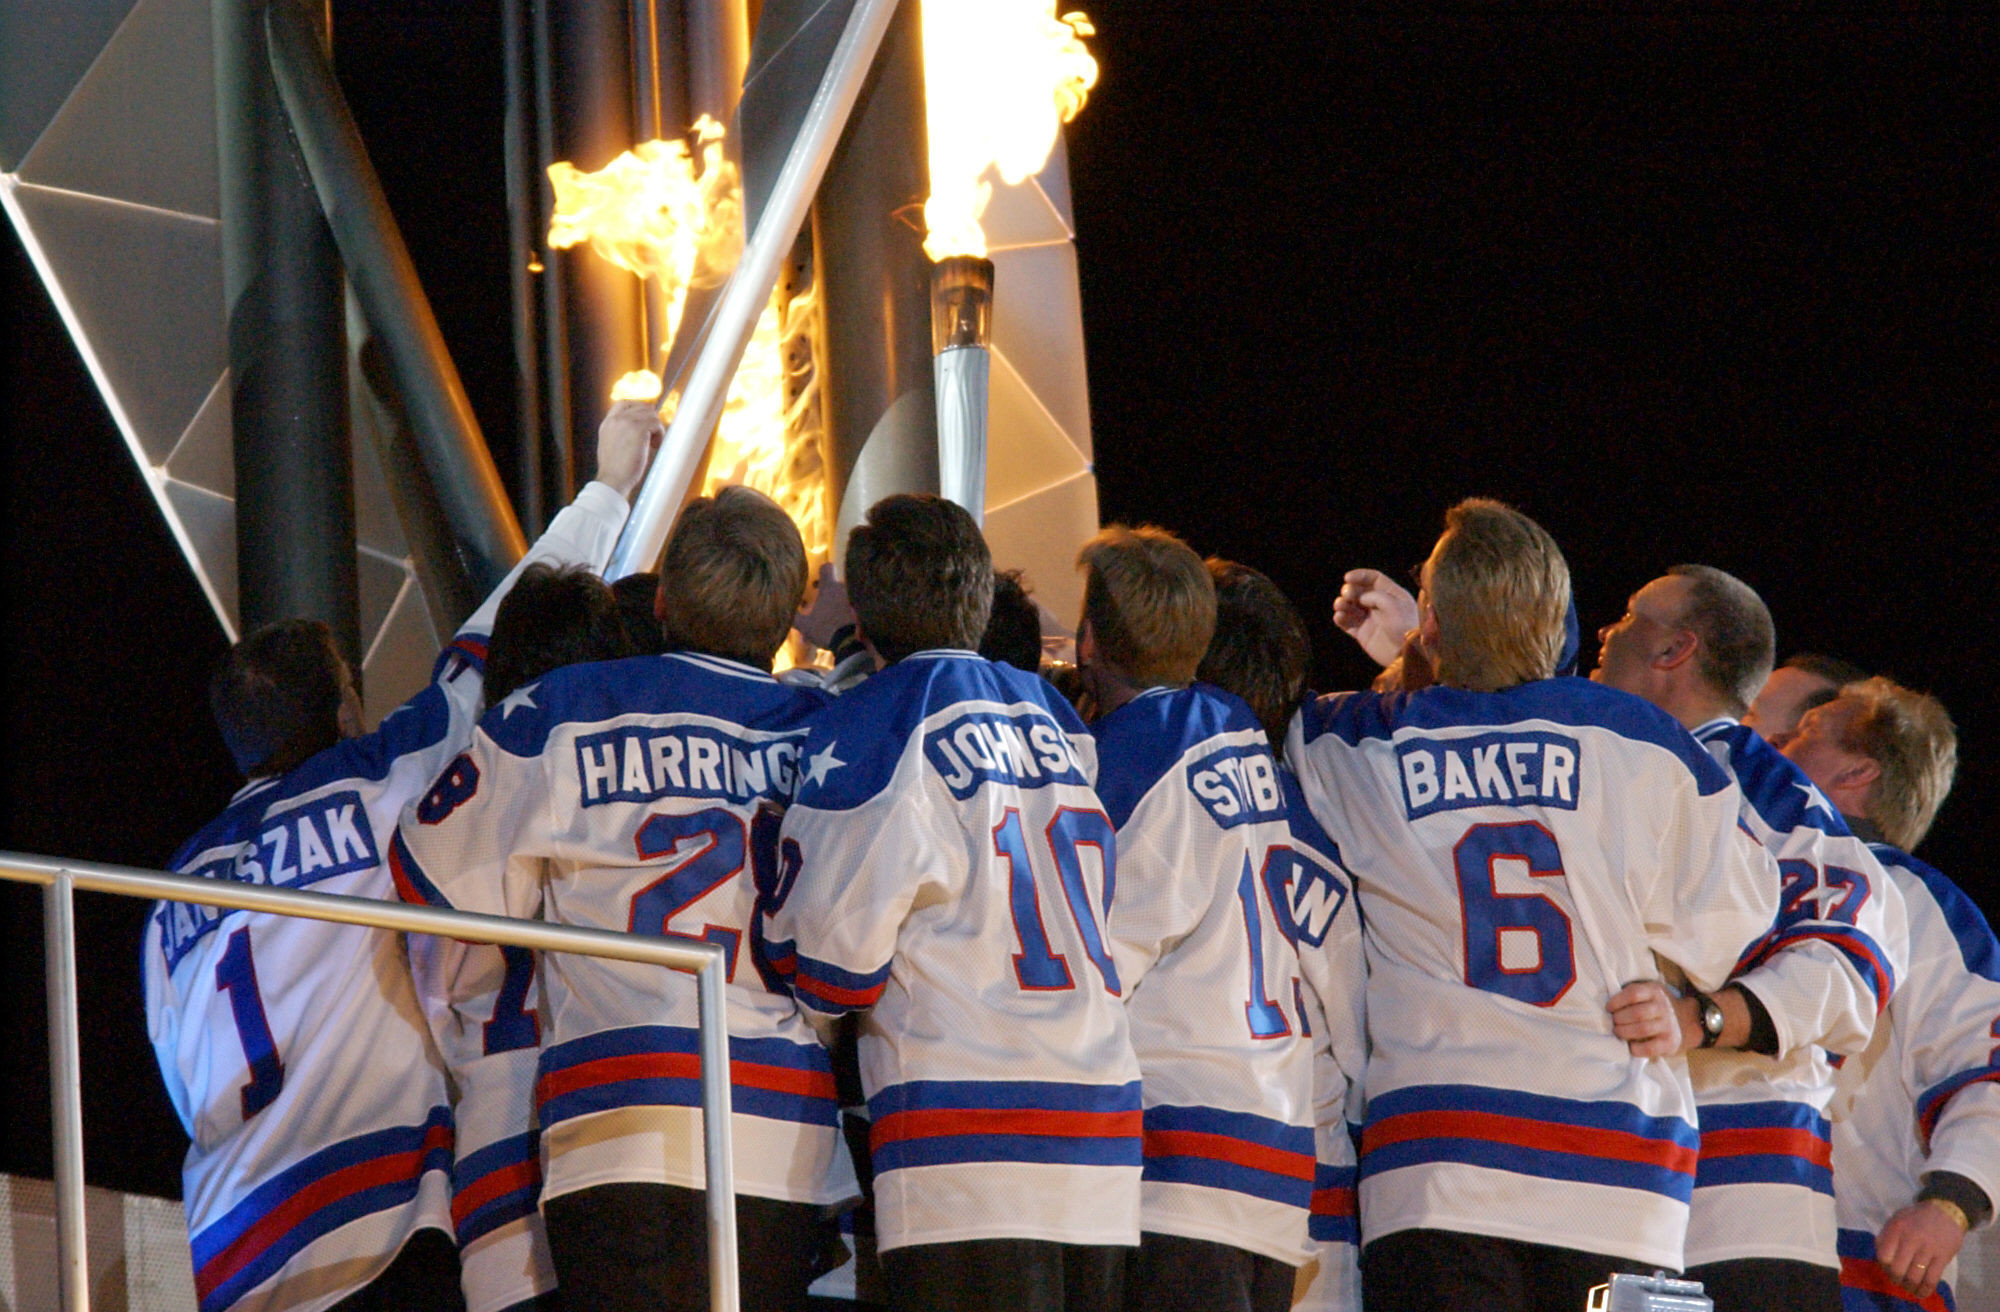 The 1980 US hockey team hold the Olympic Torch during the Opening Ceremony of the 2002 Winter Olympics in Salt Lake City ©John MacDougall/AFP via Getty Images